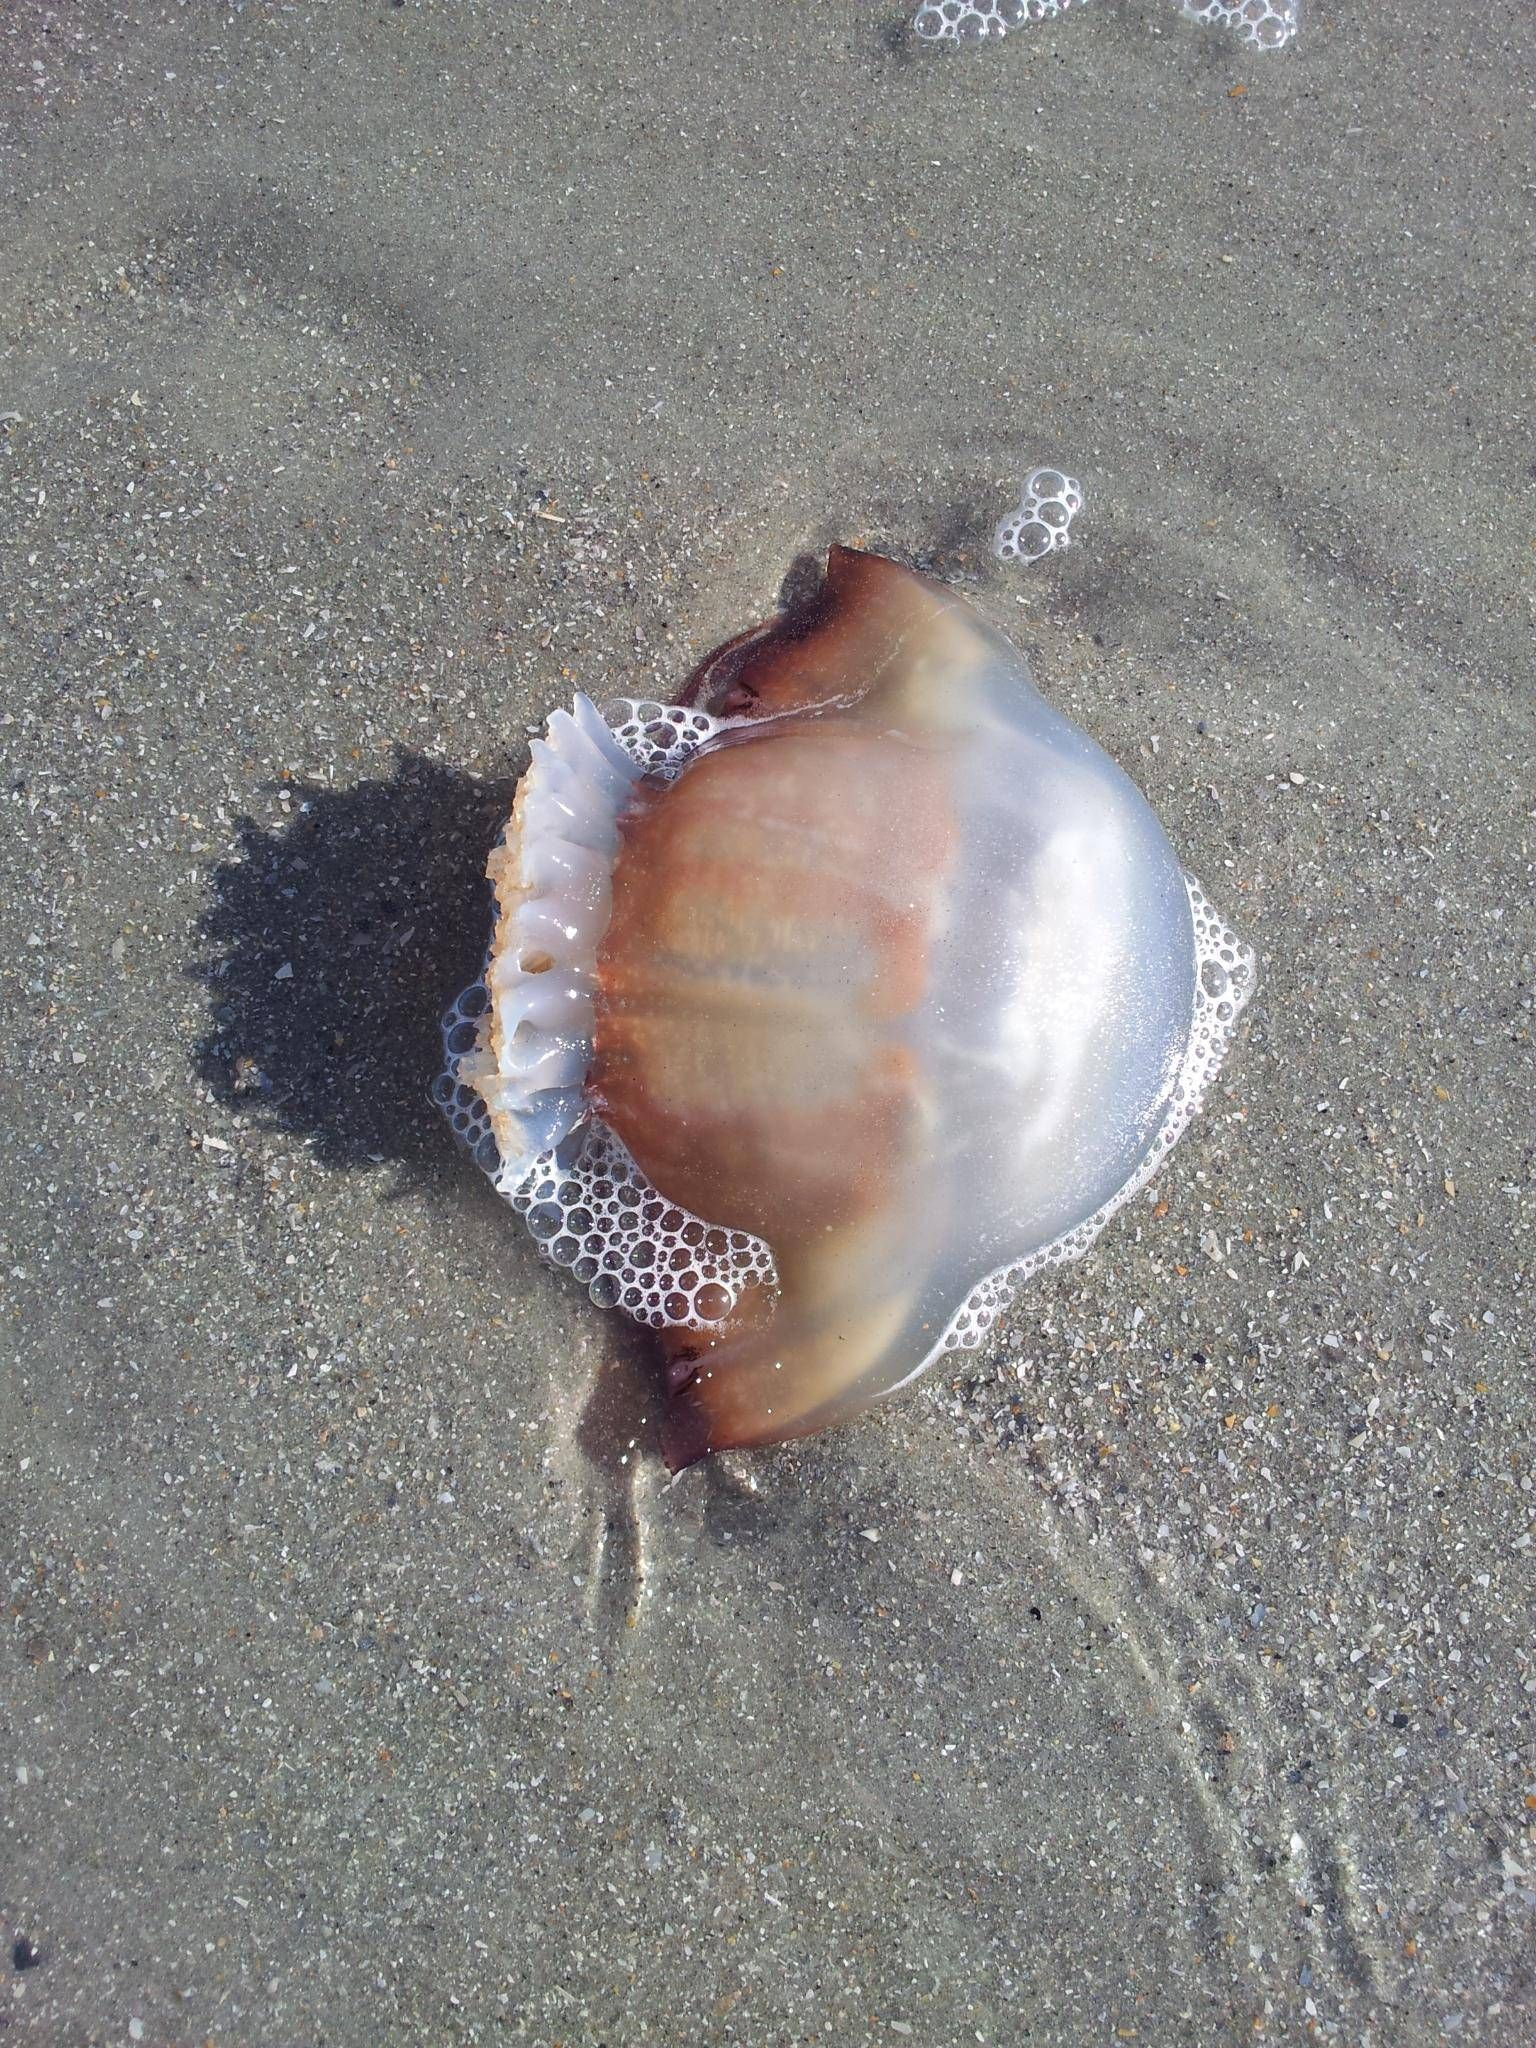 Cannonball Jellyfish Surfside Beach